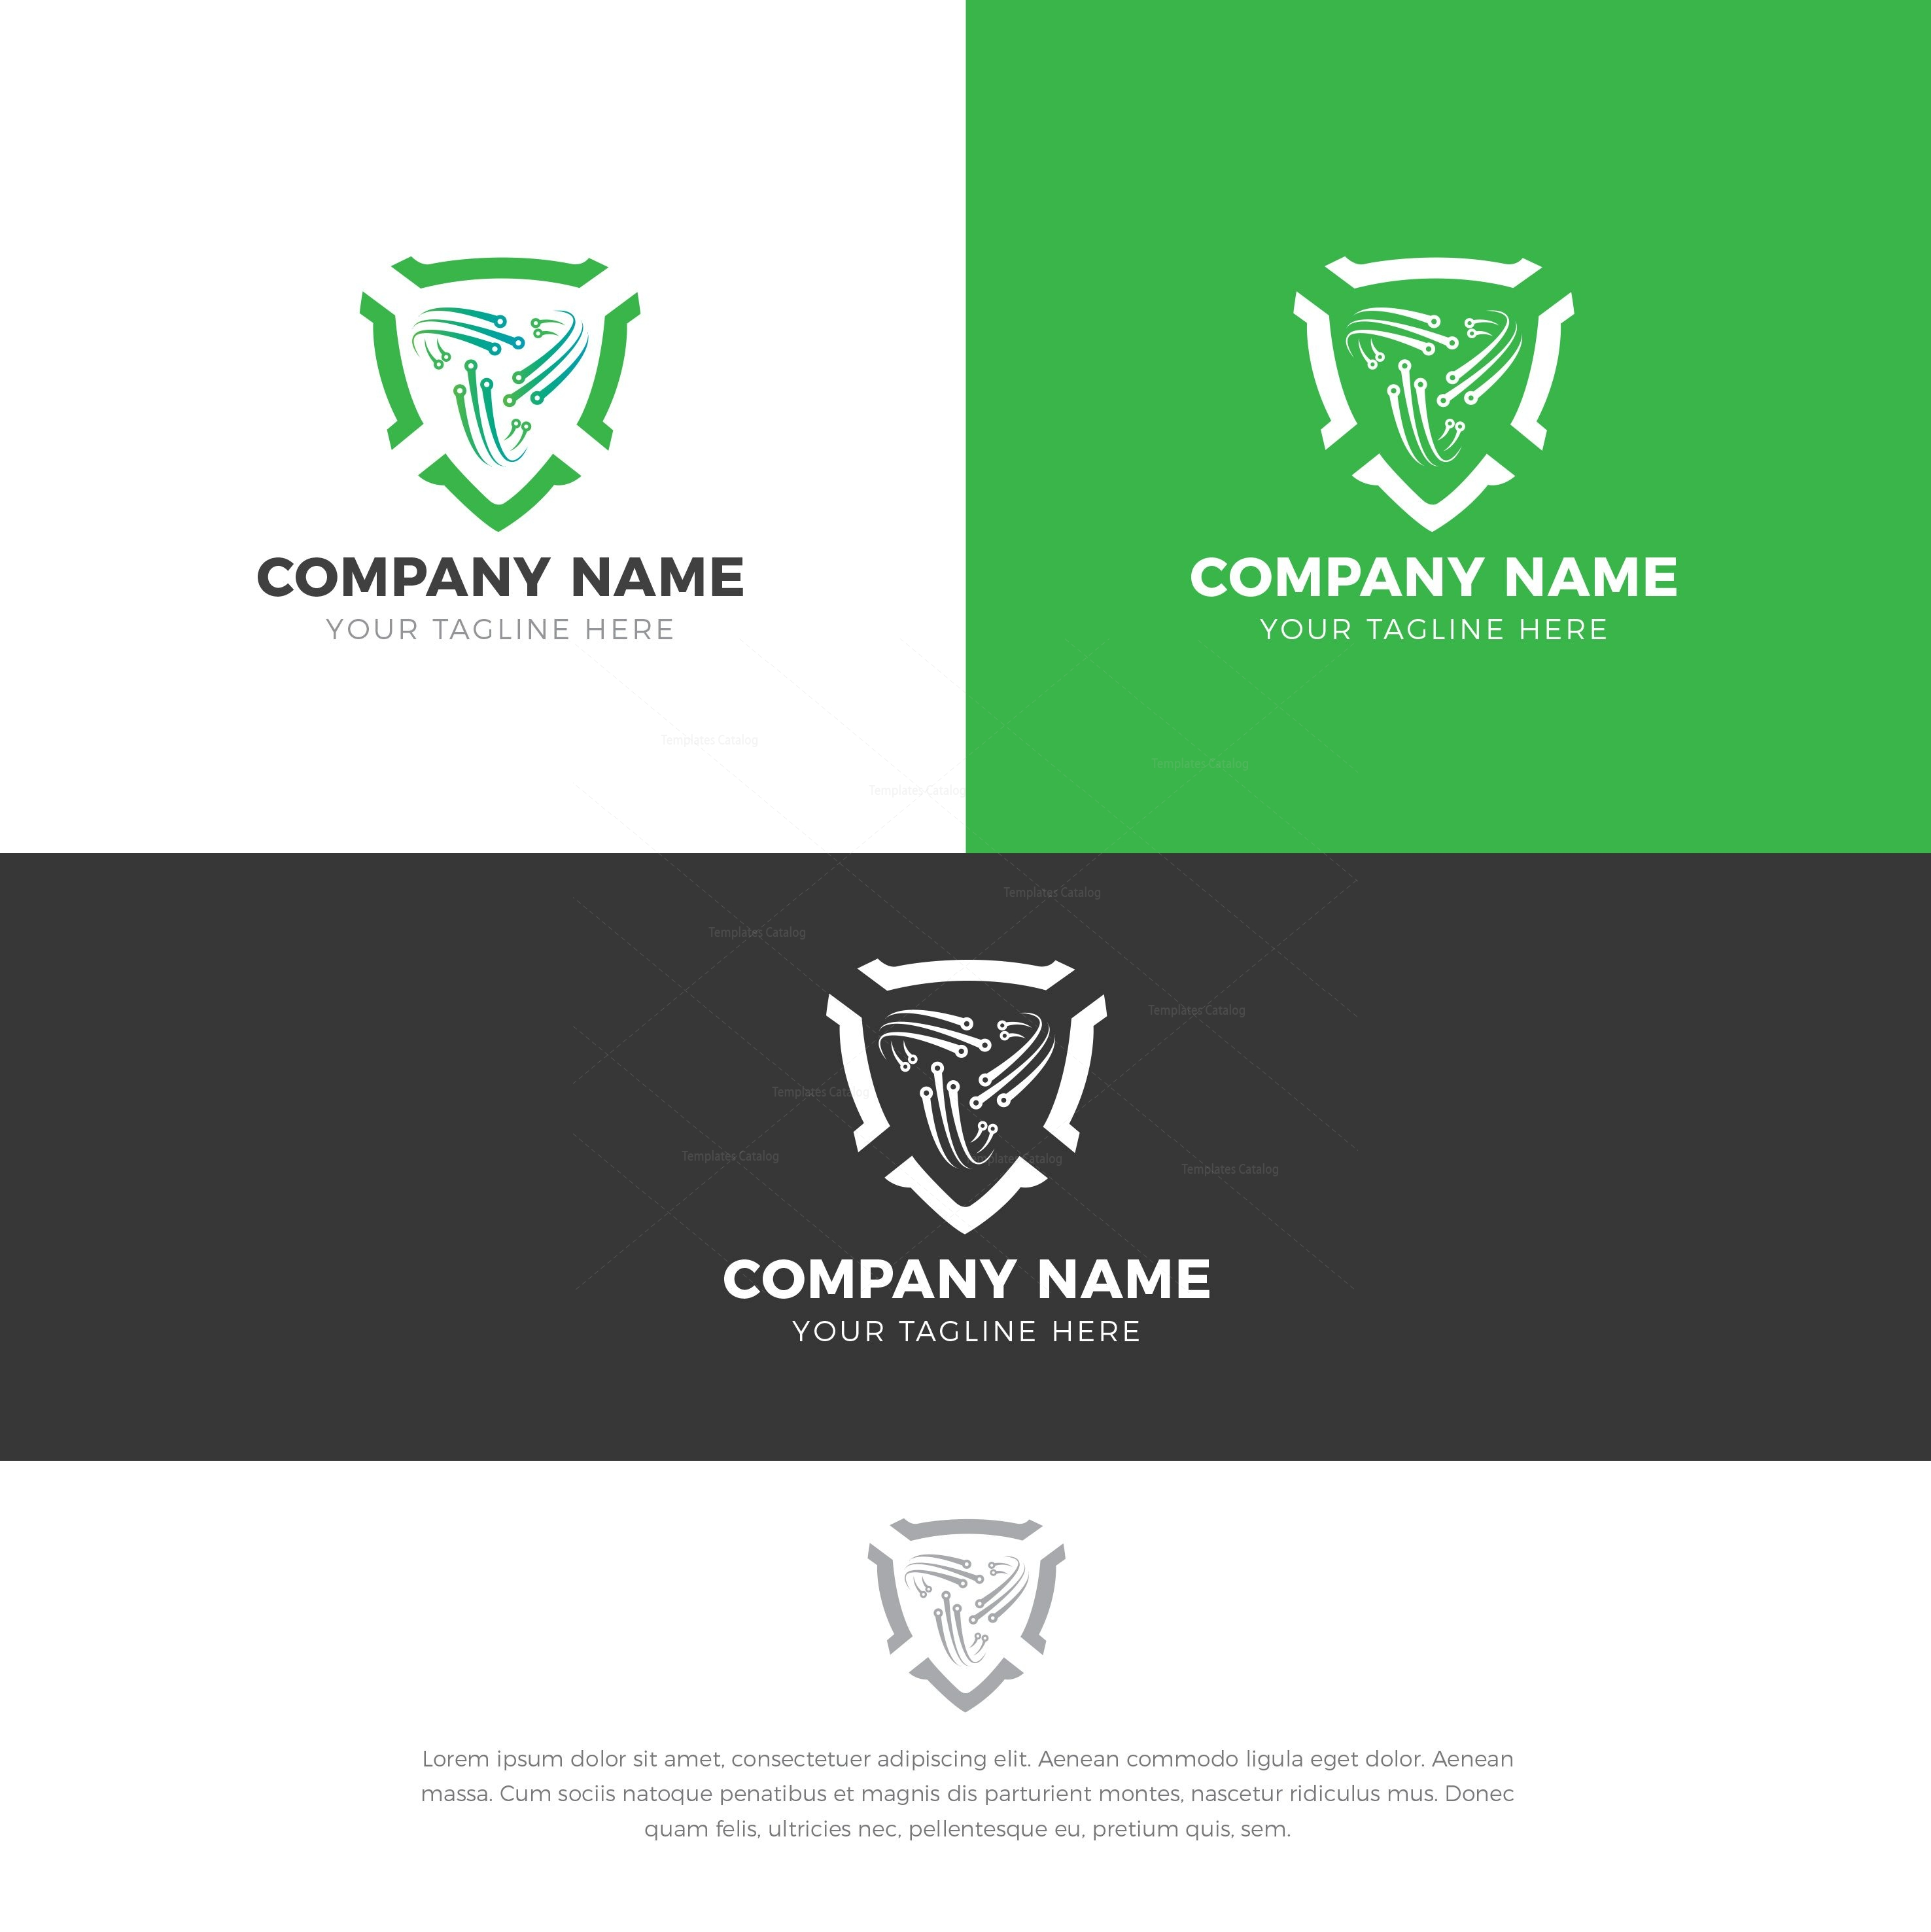 Green Shield Creative Logo Design Template